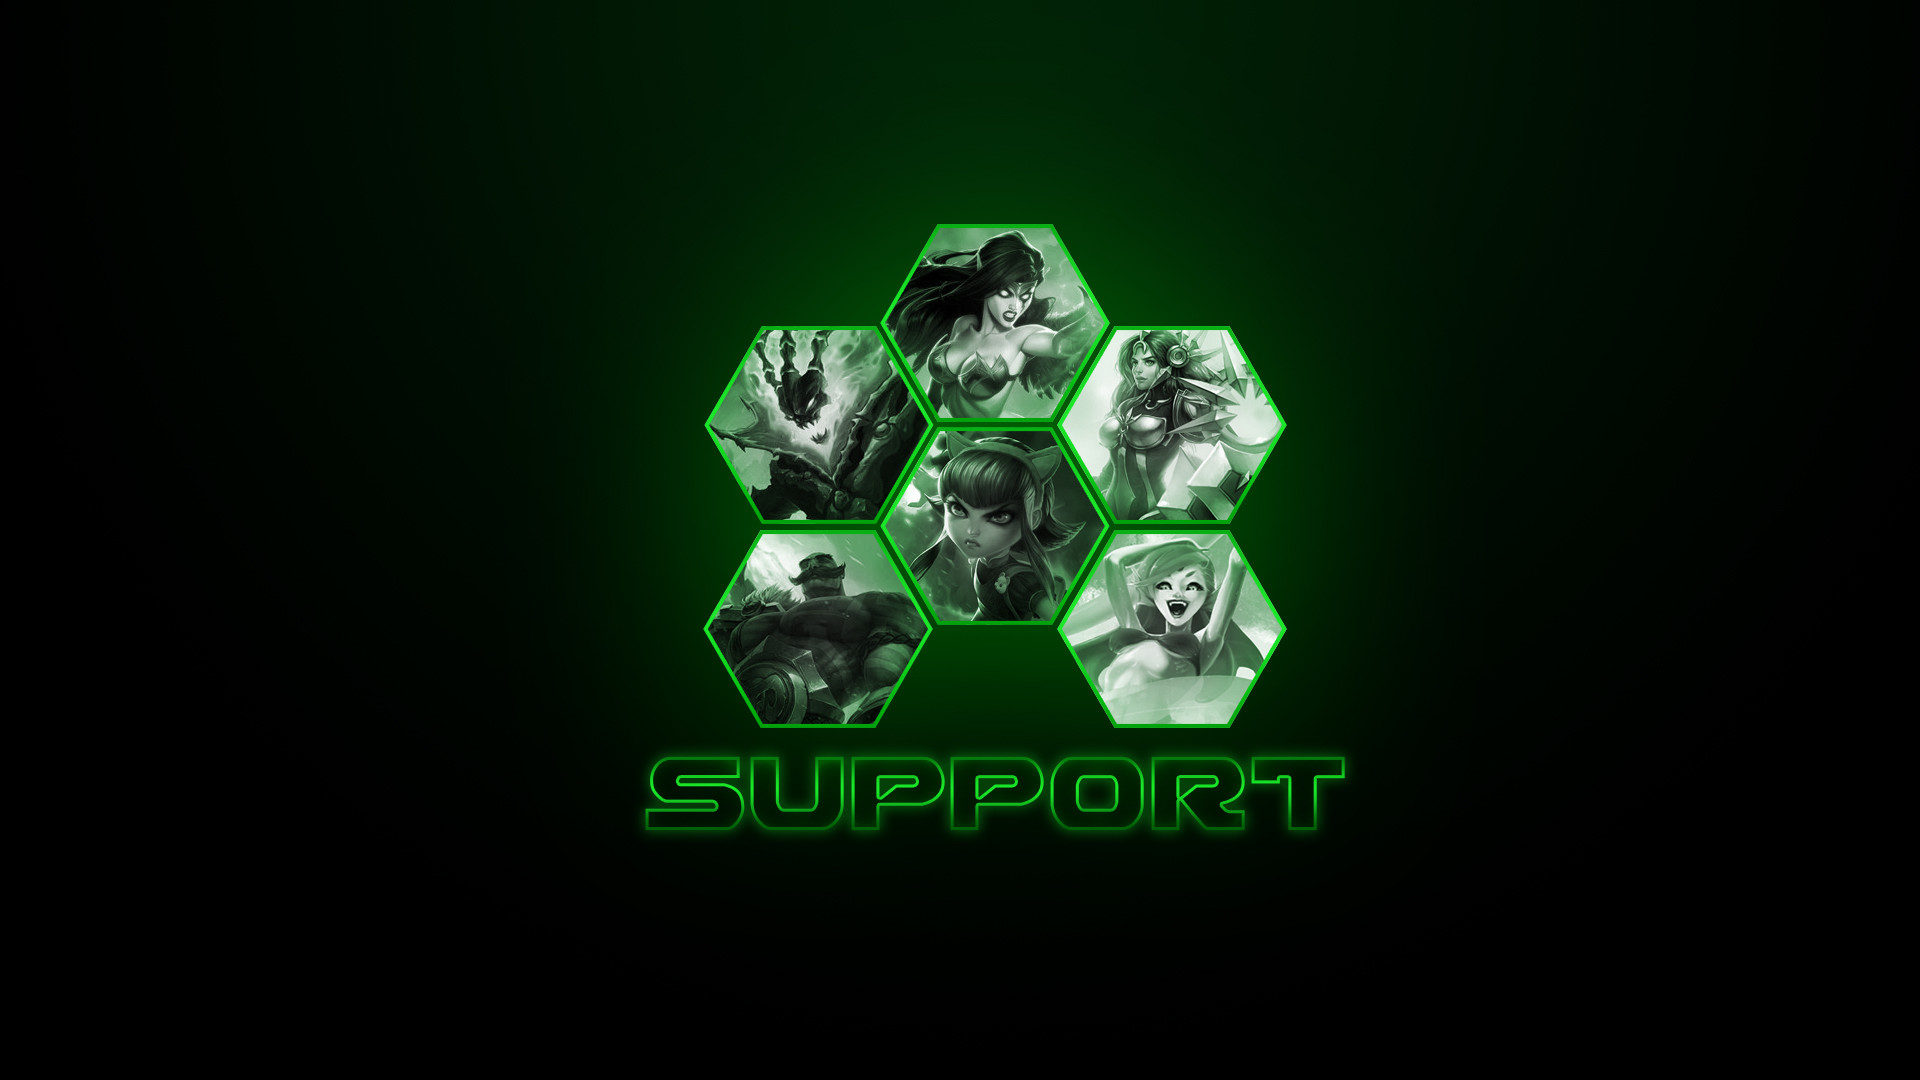 … Support League of Legends Wallpaper (Season 4) by VyxisPrime